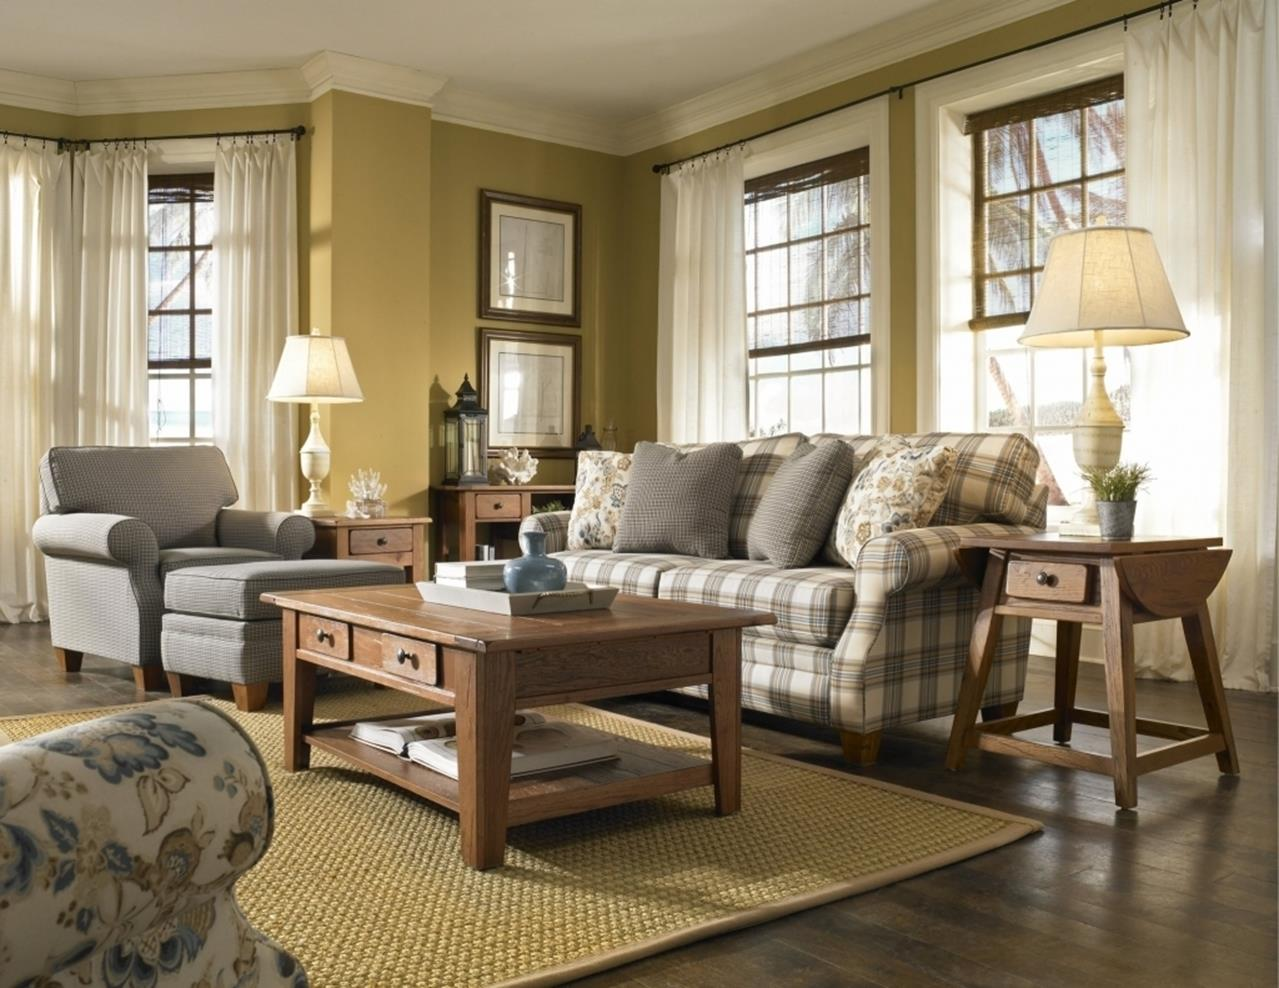 country style living room furniture ideas 4  decorelated